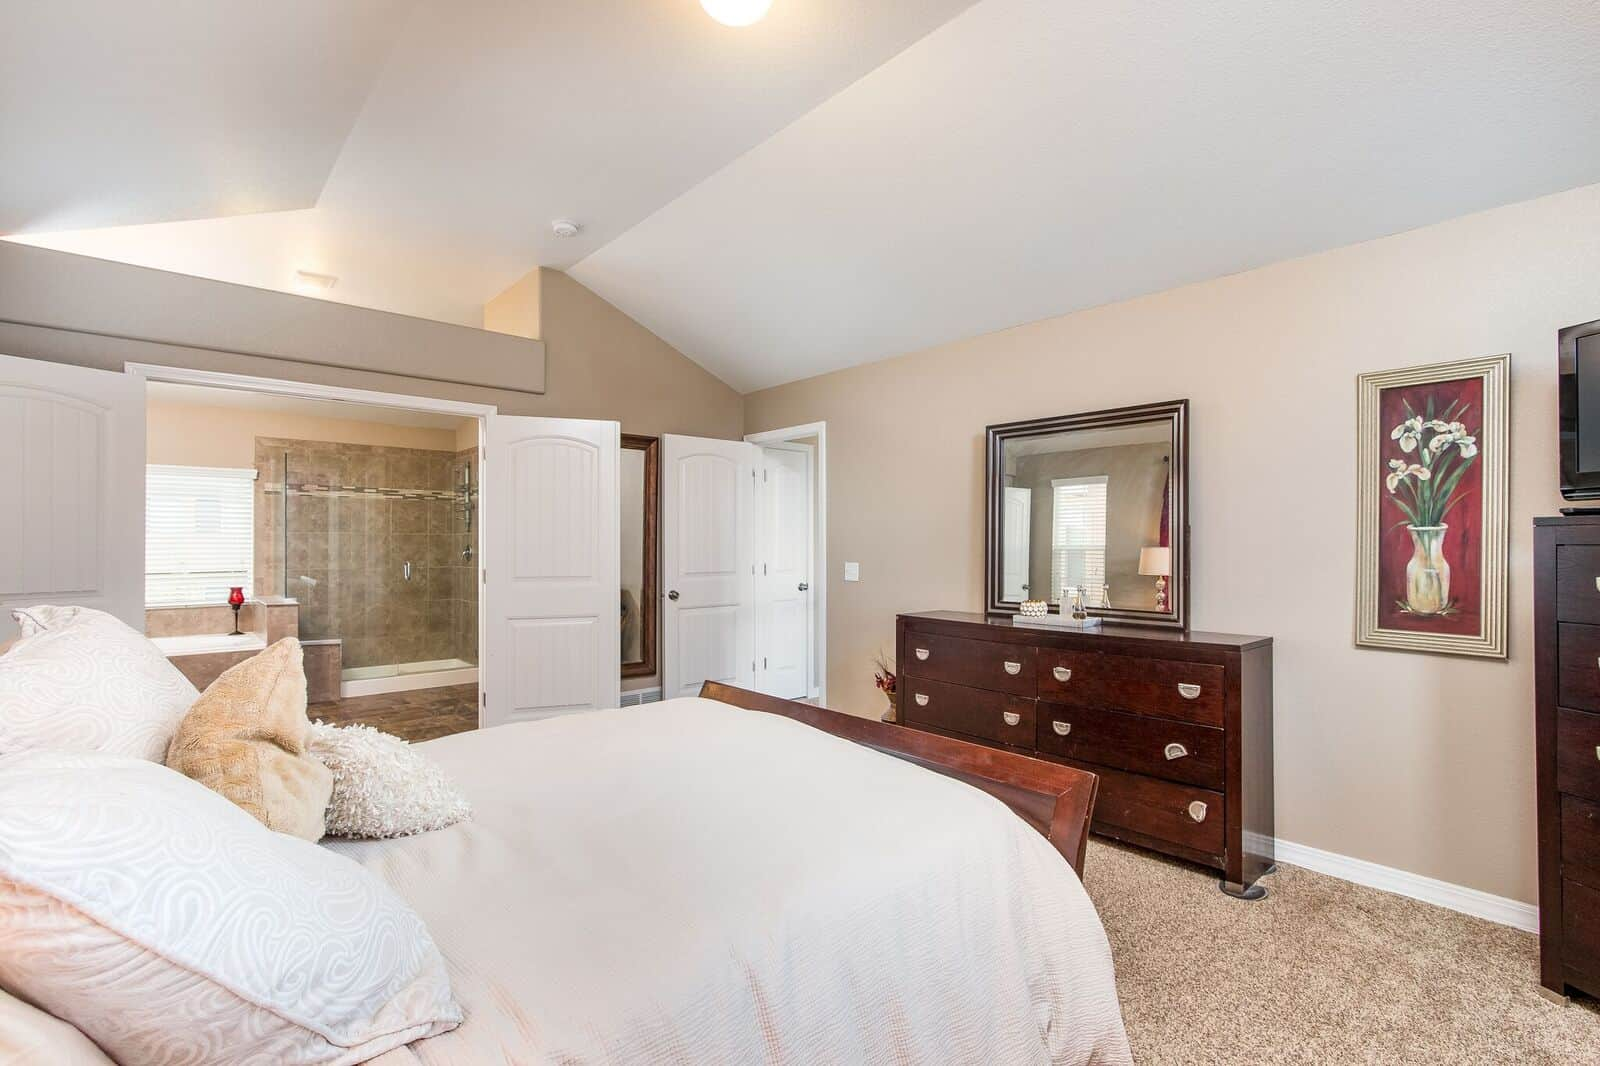 Master Bedroom showing Bath and Entry